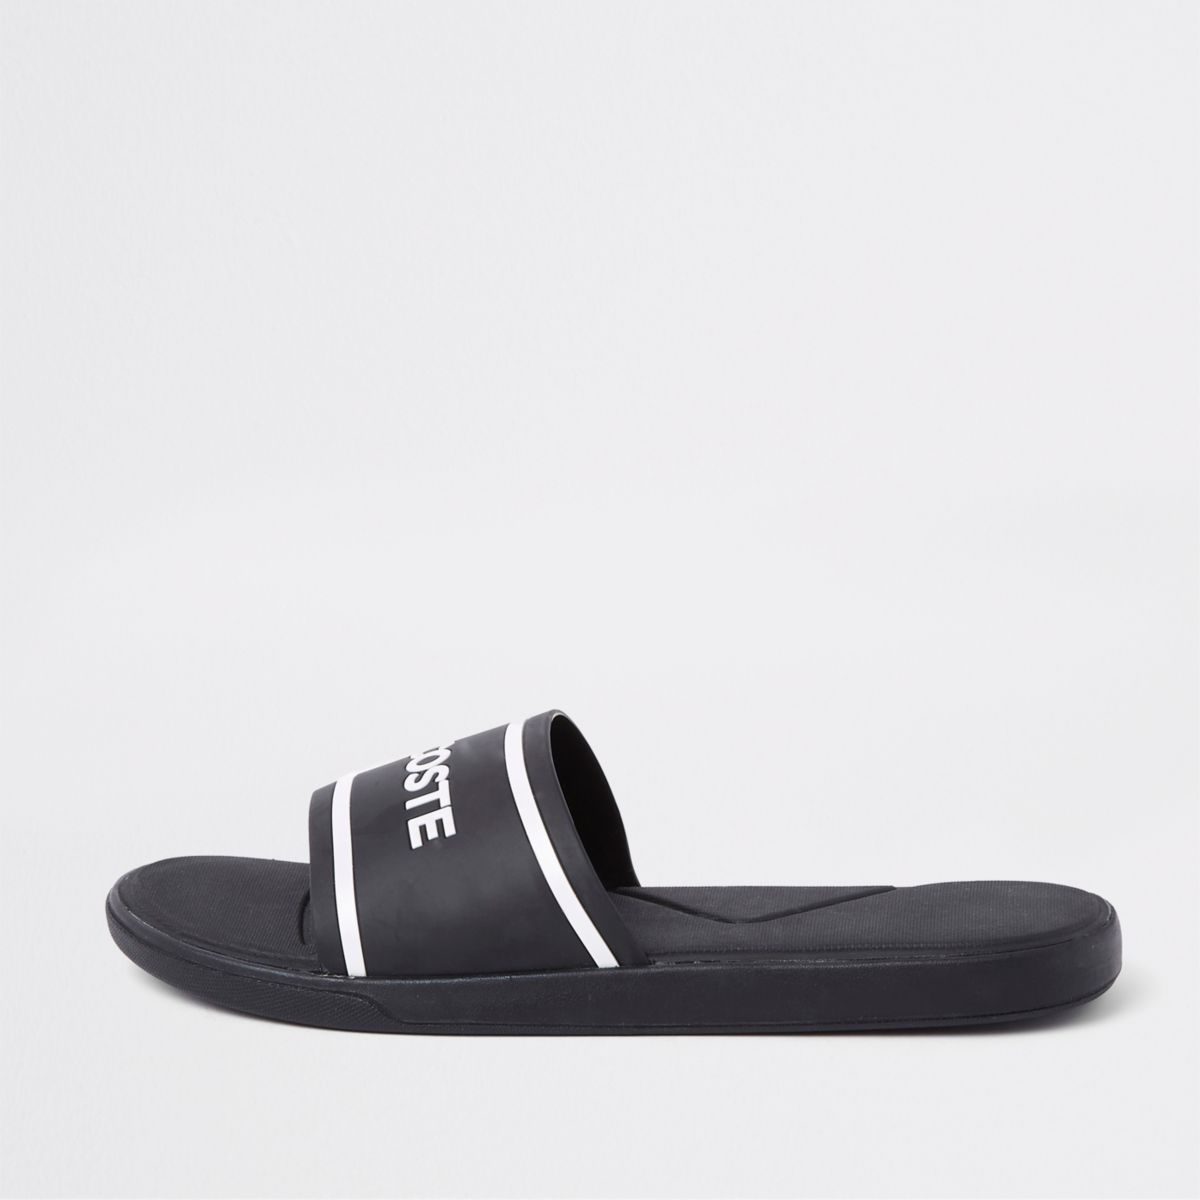 Lacoste black quilted sliders